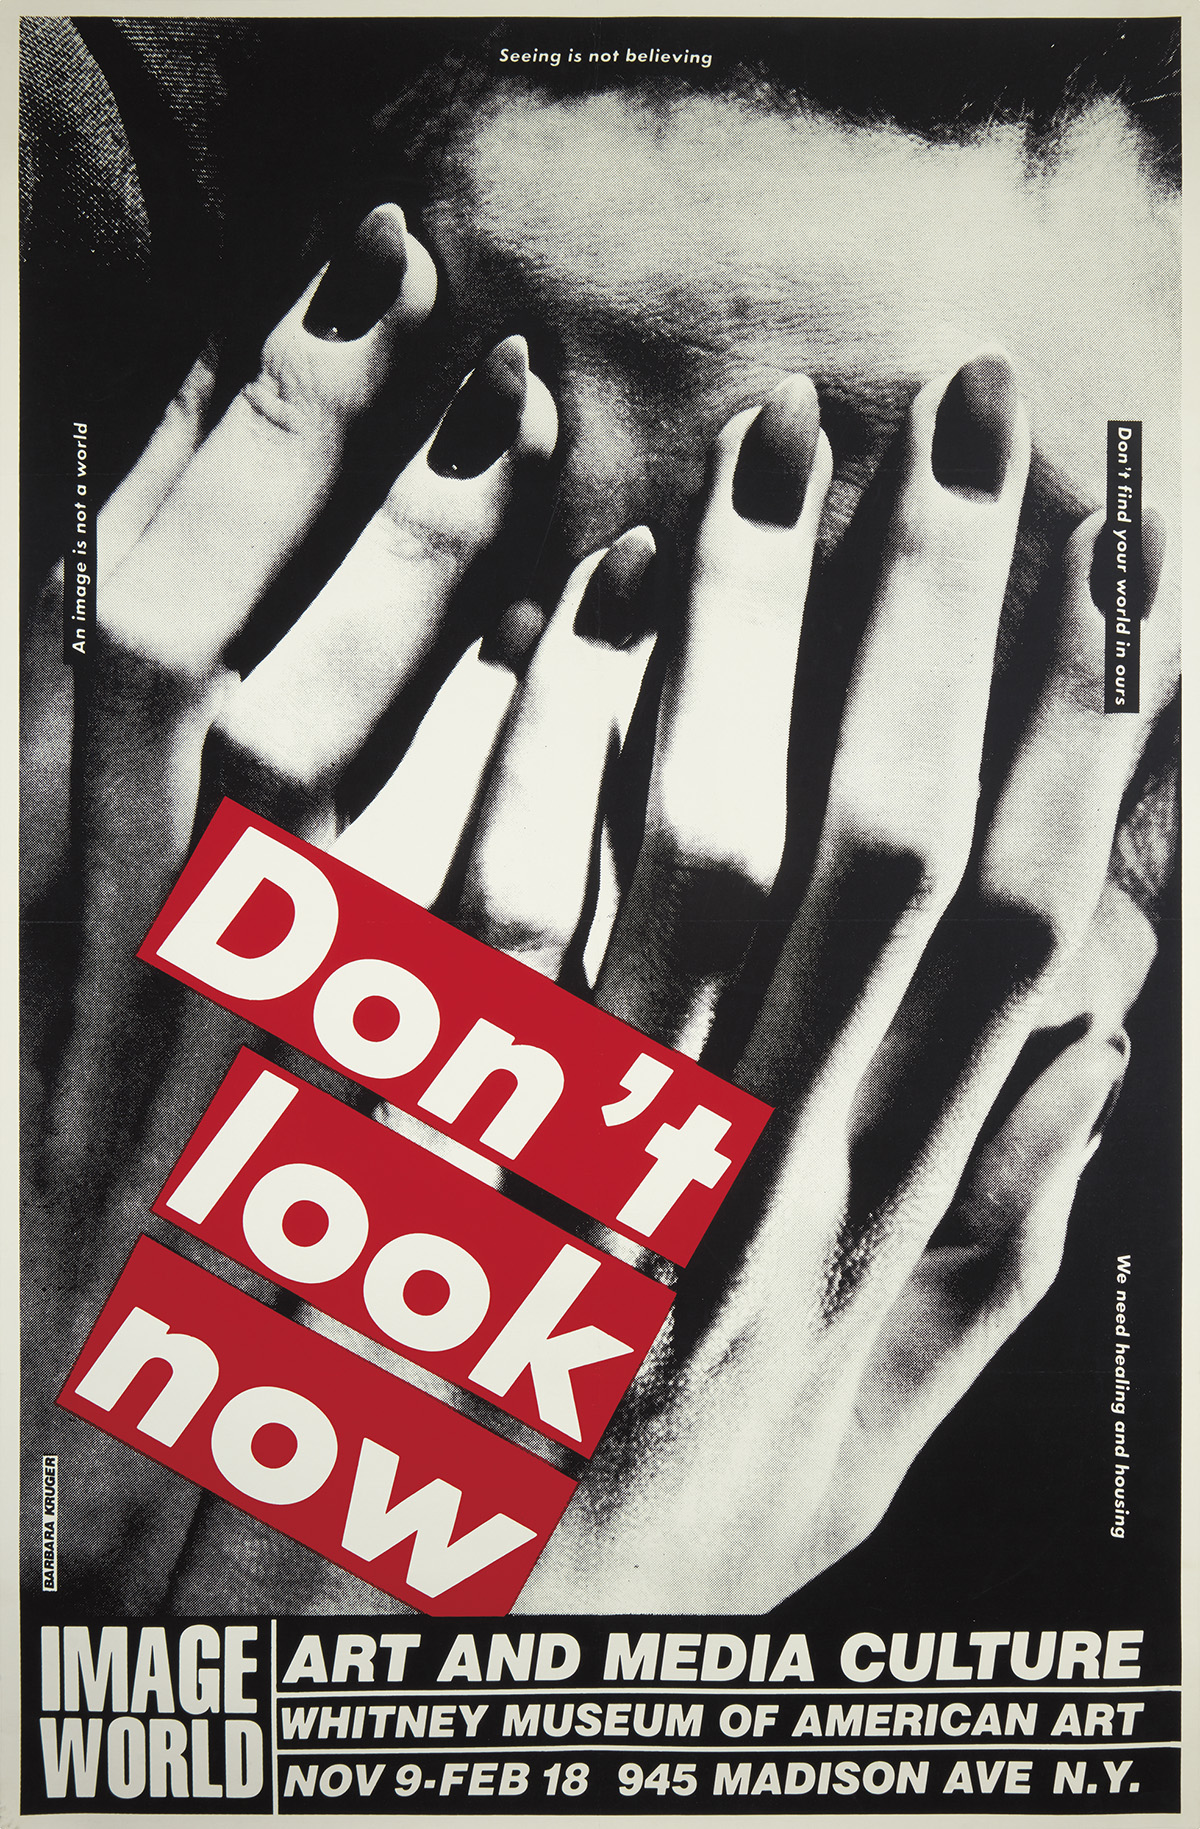 BARBARA KRUGER (1945- ). DONT LOOK NOW / WHITNEY MUSEUM. 1989. 45x29 inches, 114x75 cm.